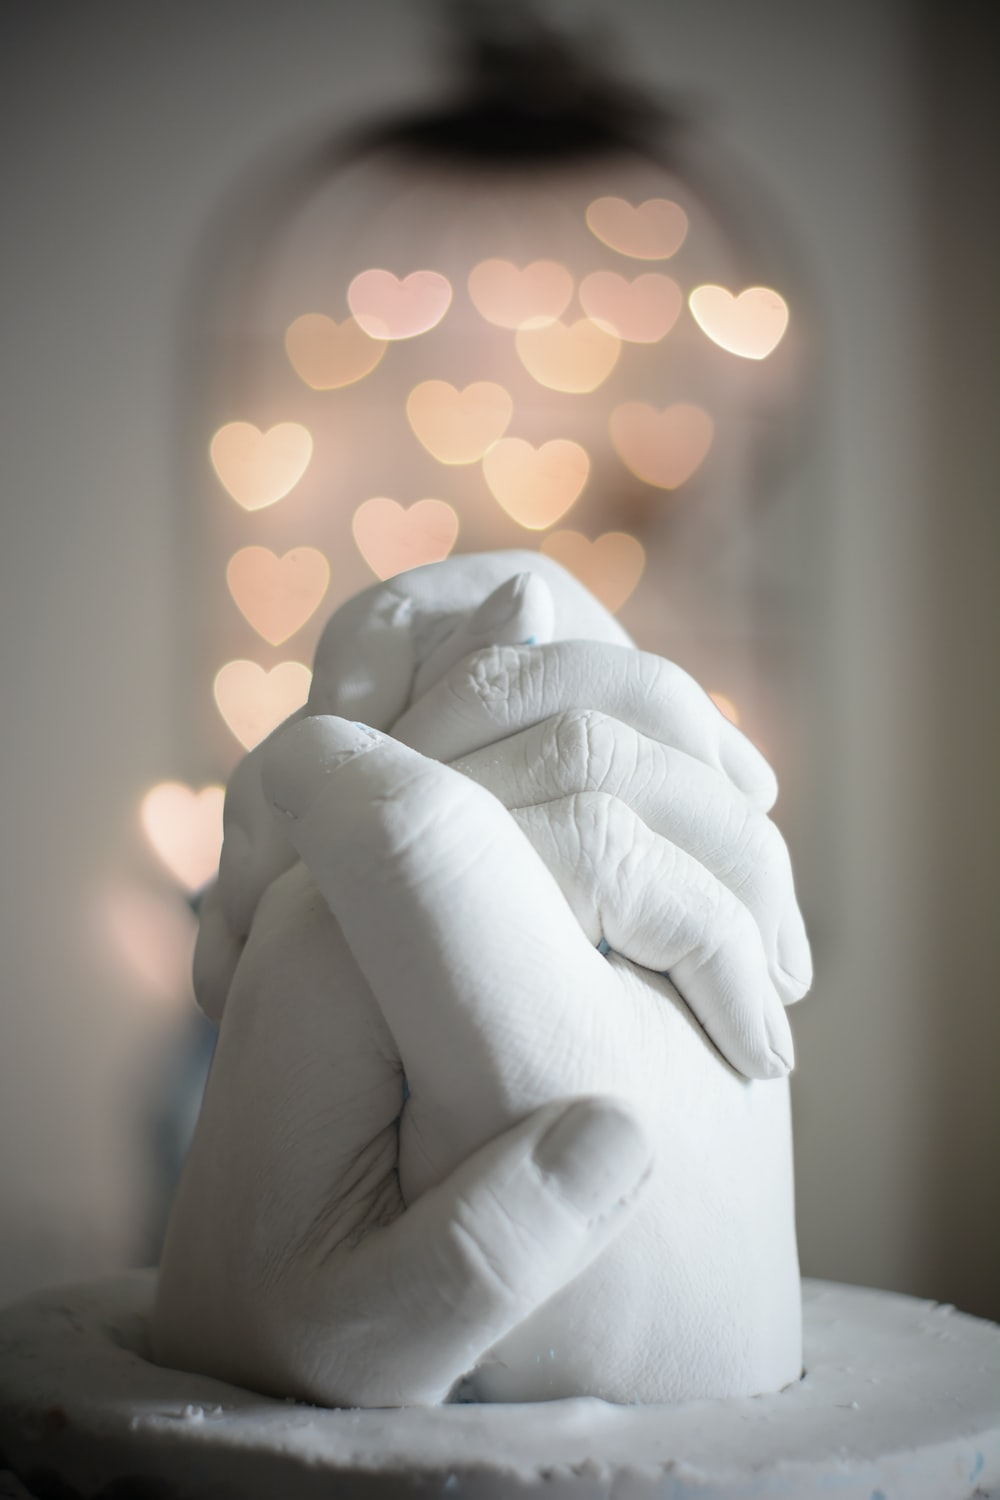 selective focus of holding hands figurine